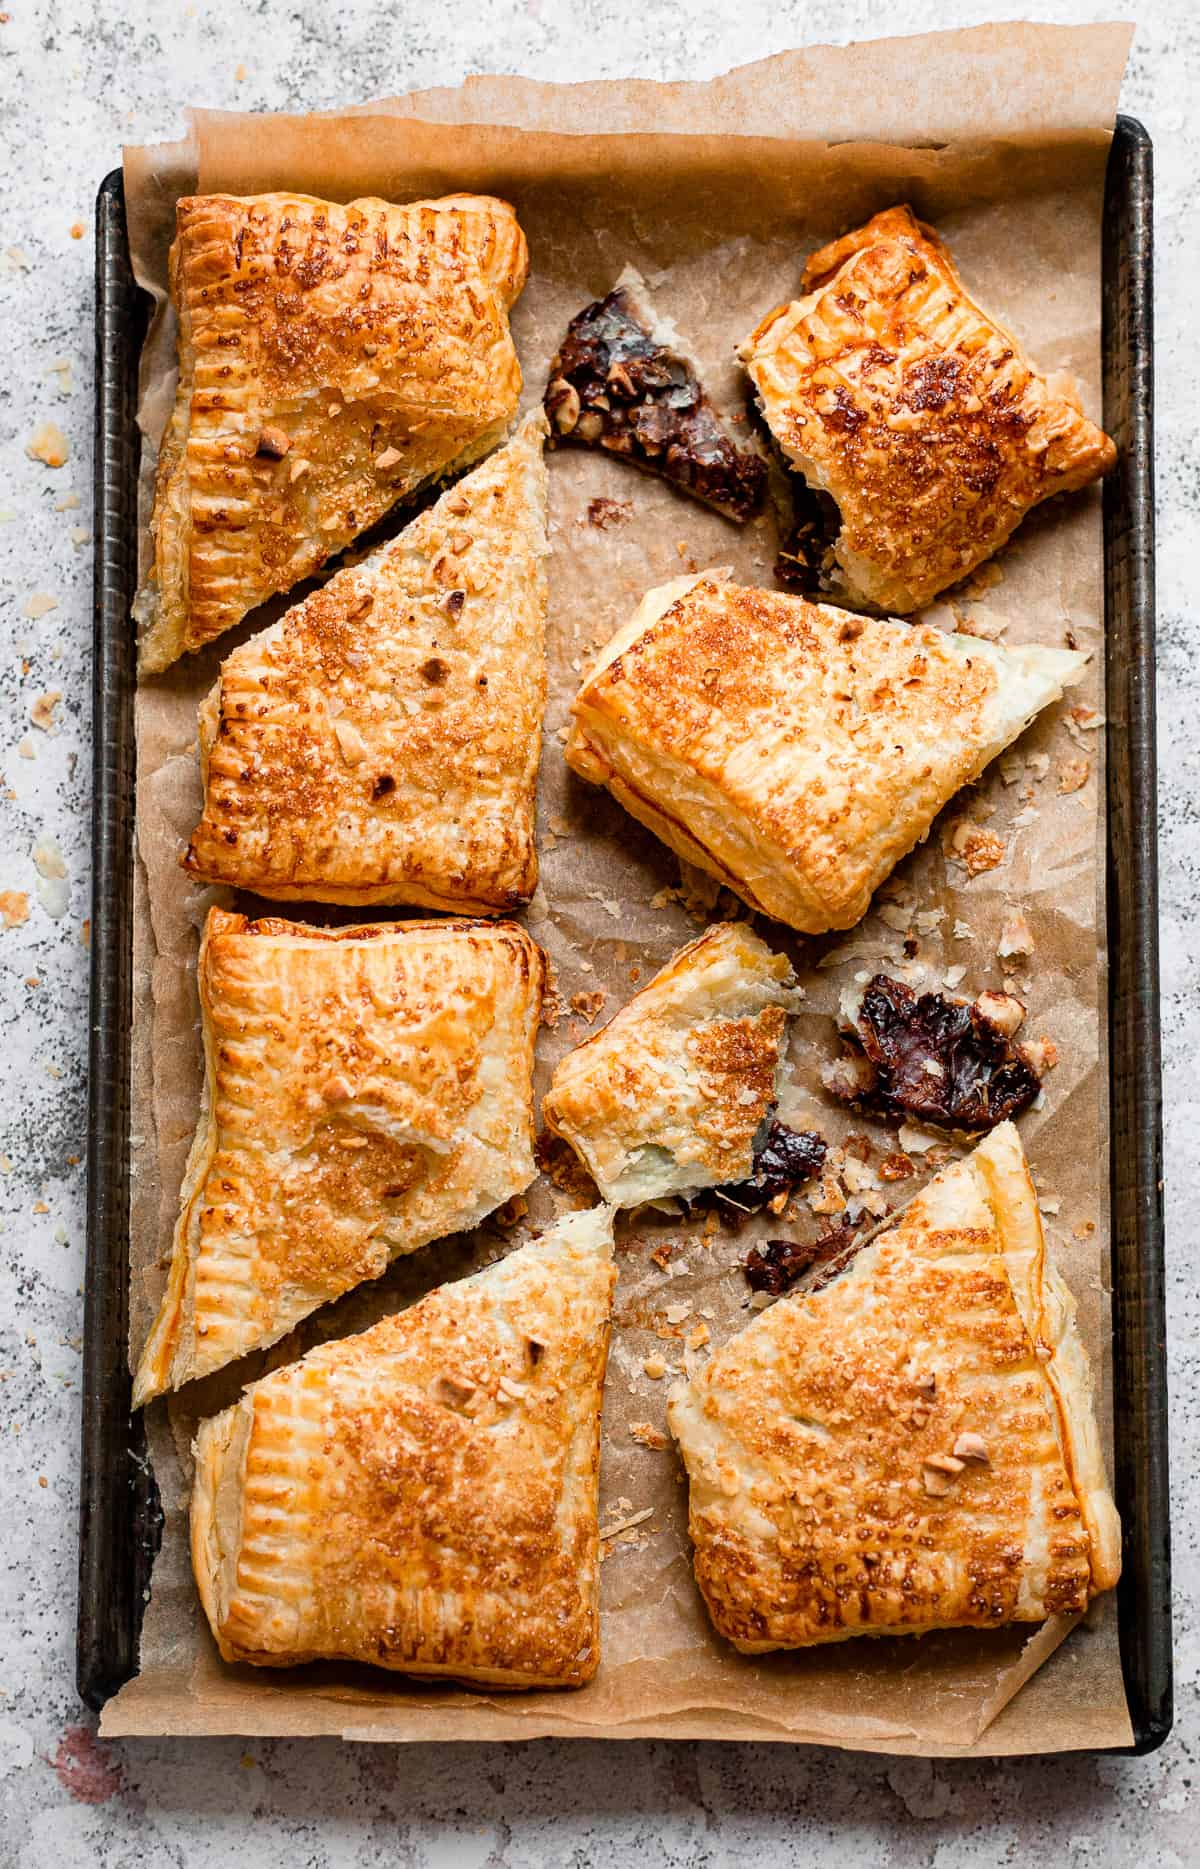 Nutella puff pastries on a baking tray with baking paper.